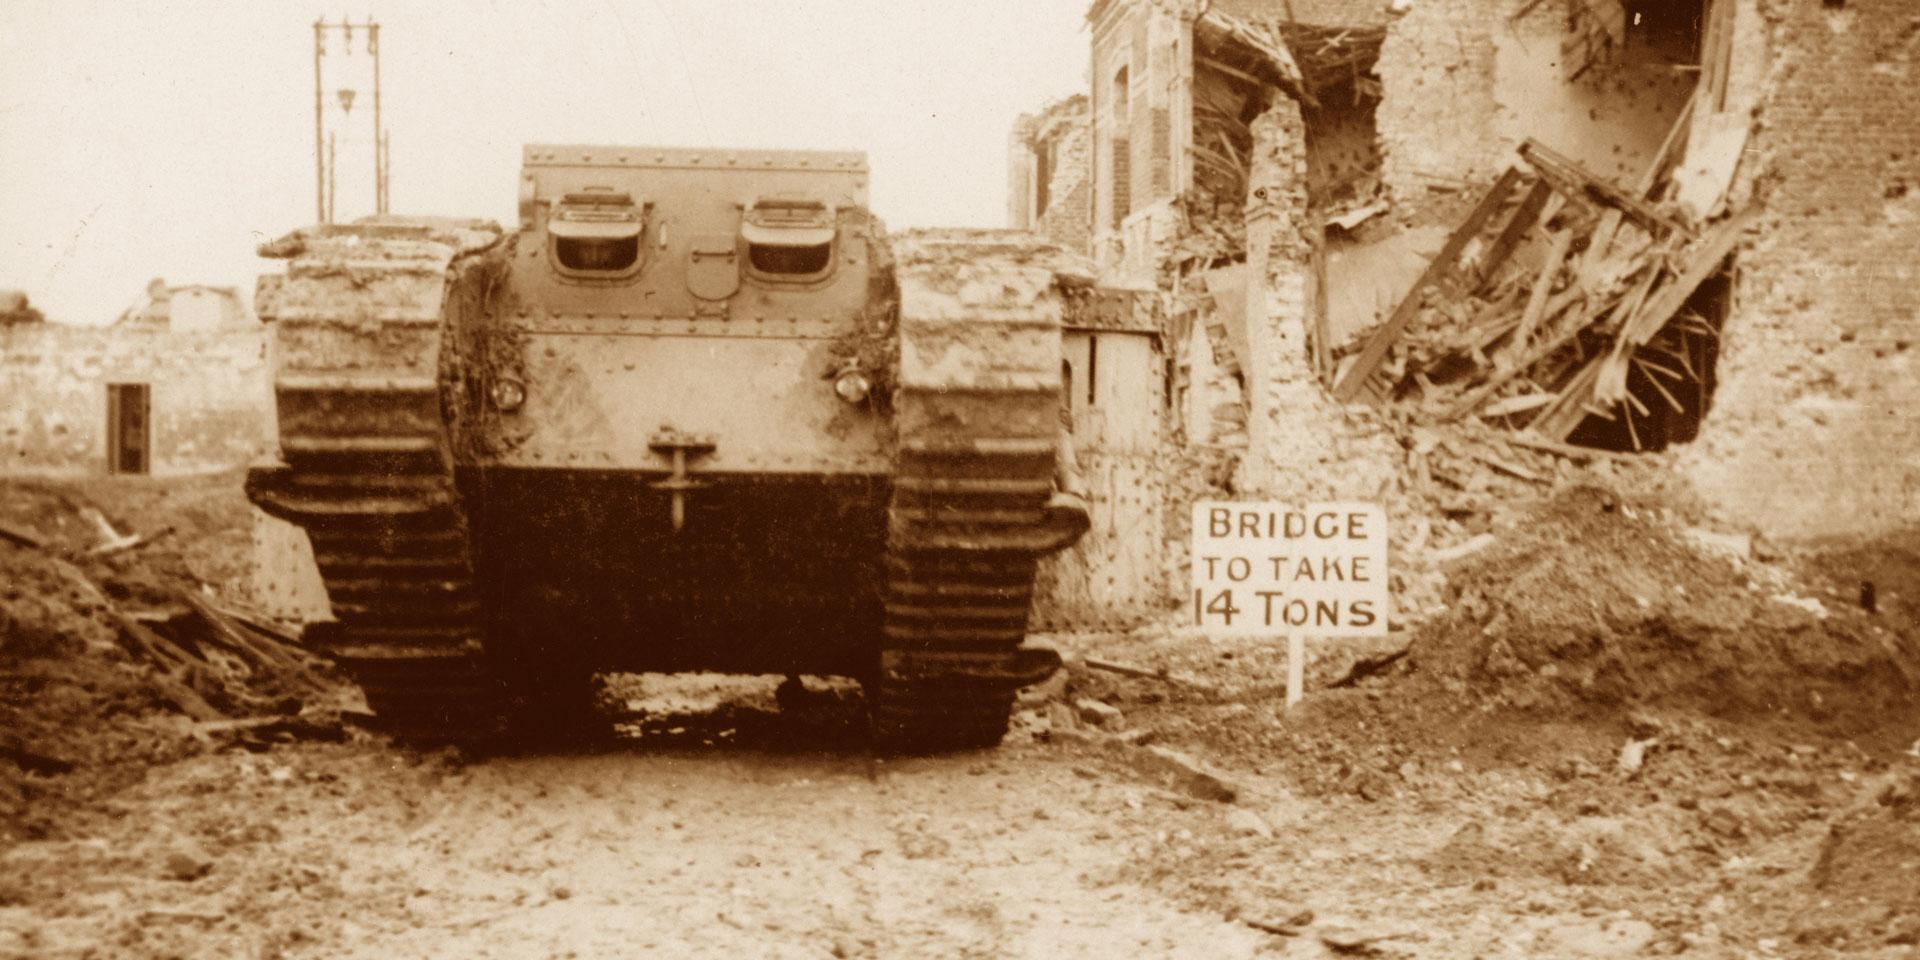 A Mk II tank going into action at Arras, 10 April 1917